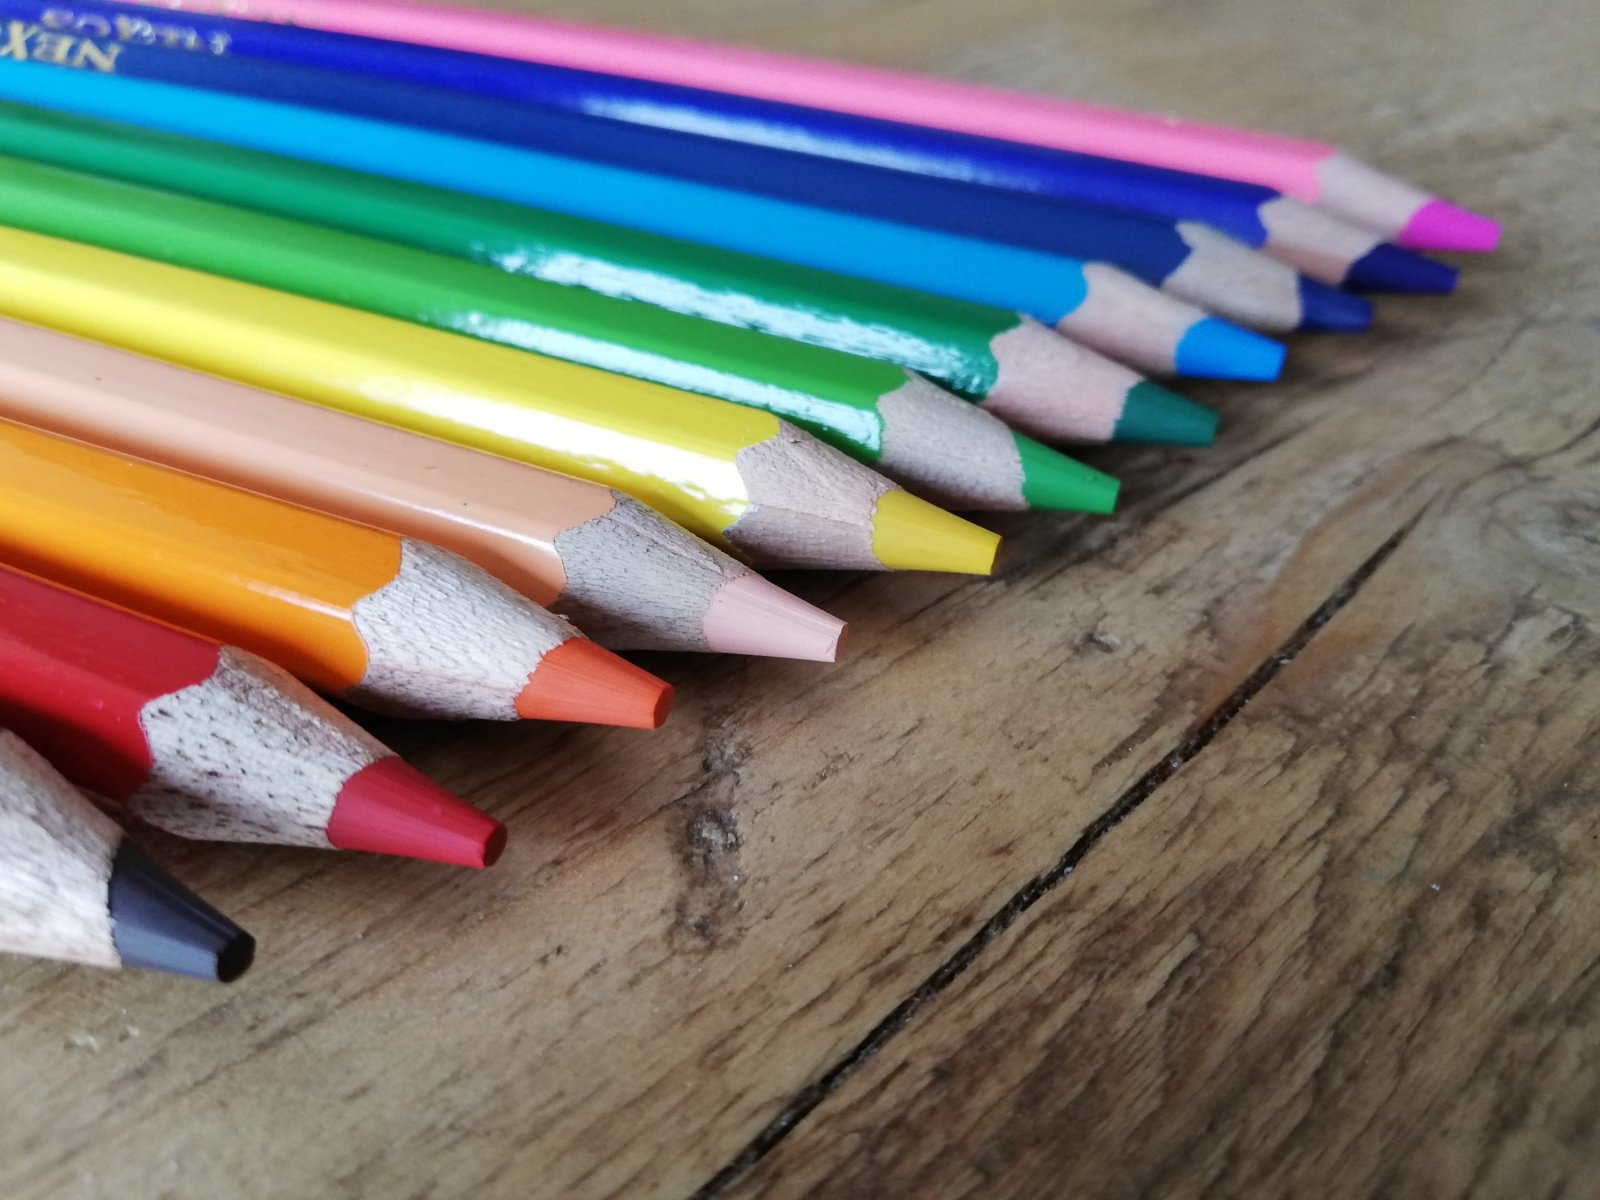 Nexus - nexus euro - nexus home learning - link and lace - arts and crafts - product review - Jumbo Pencils - Chalky Pastels - fine motor skills - fine motor activities - inclusive - learning through play - play matters - montessori inspired